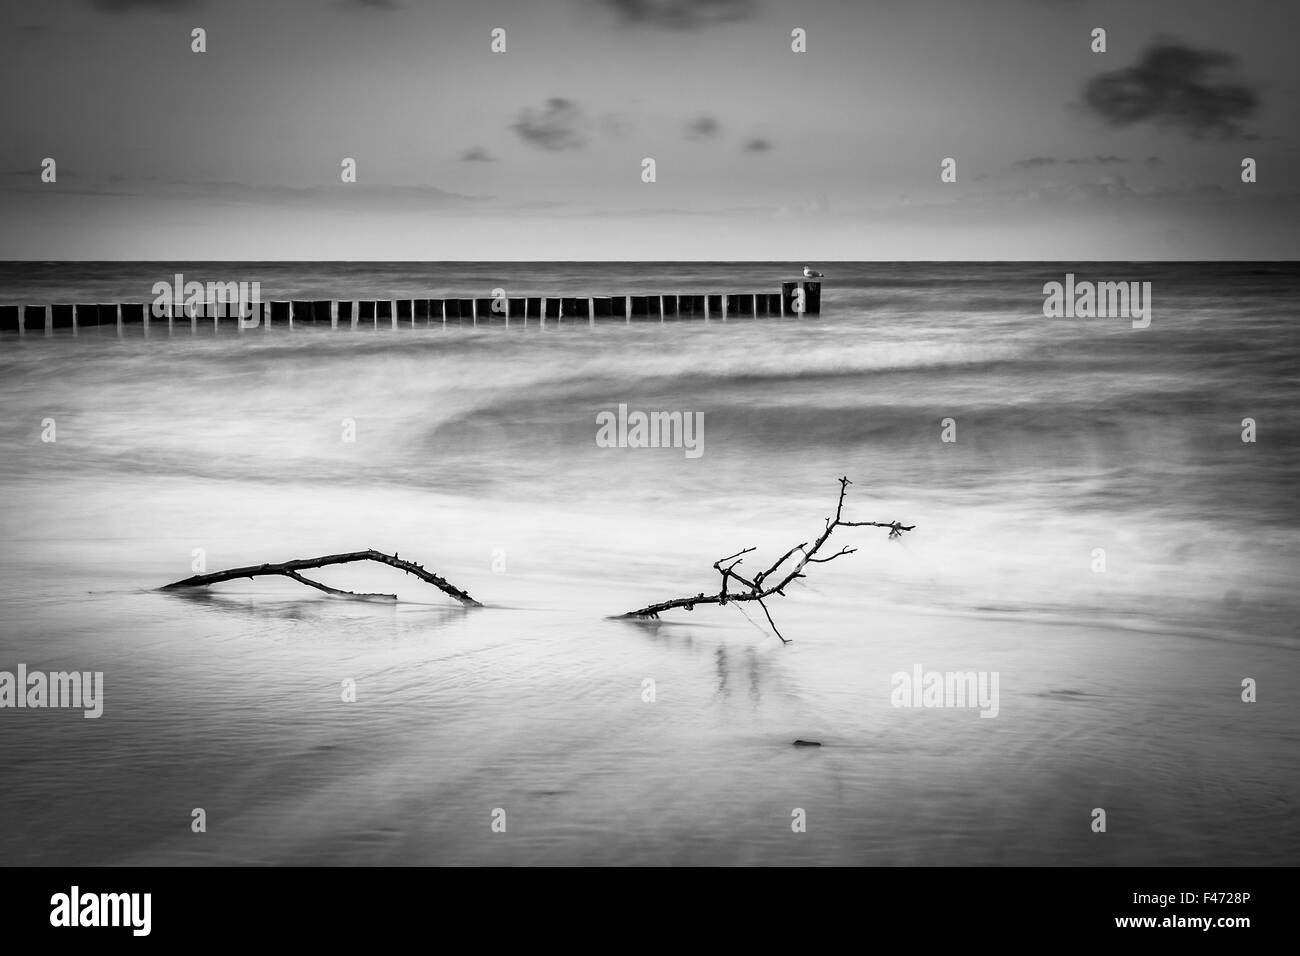 Groynes on shore of the Baltic Sea - Stock Image